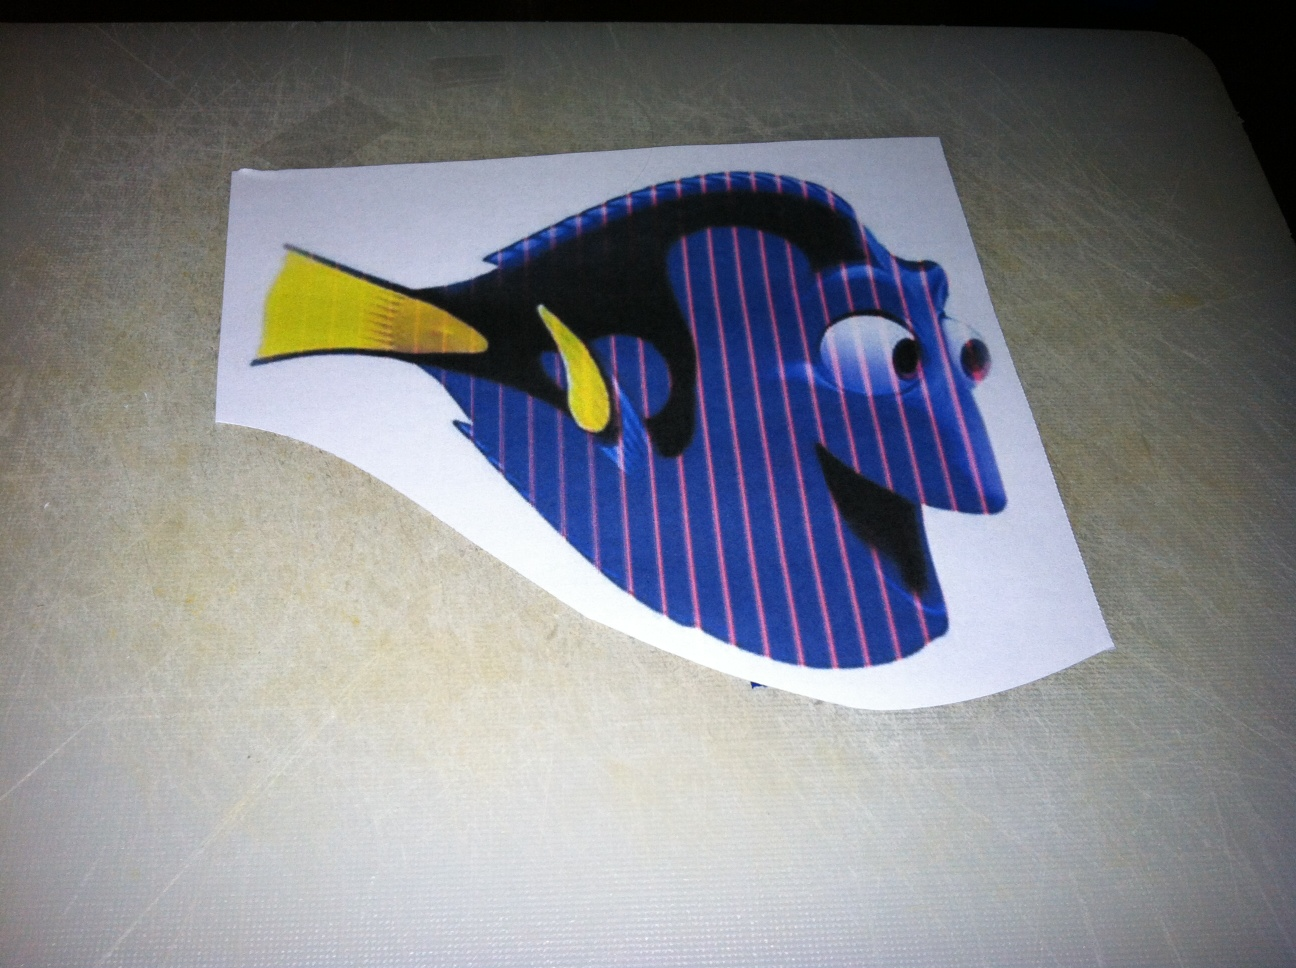 How to make cool and small stuff duct tape crafts for Mini duct tape crafts